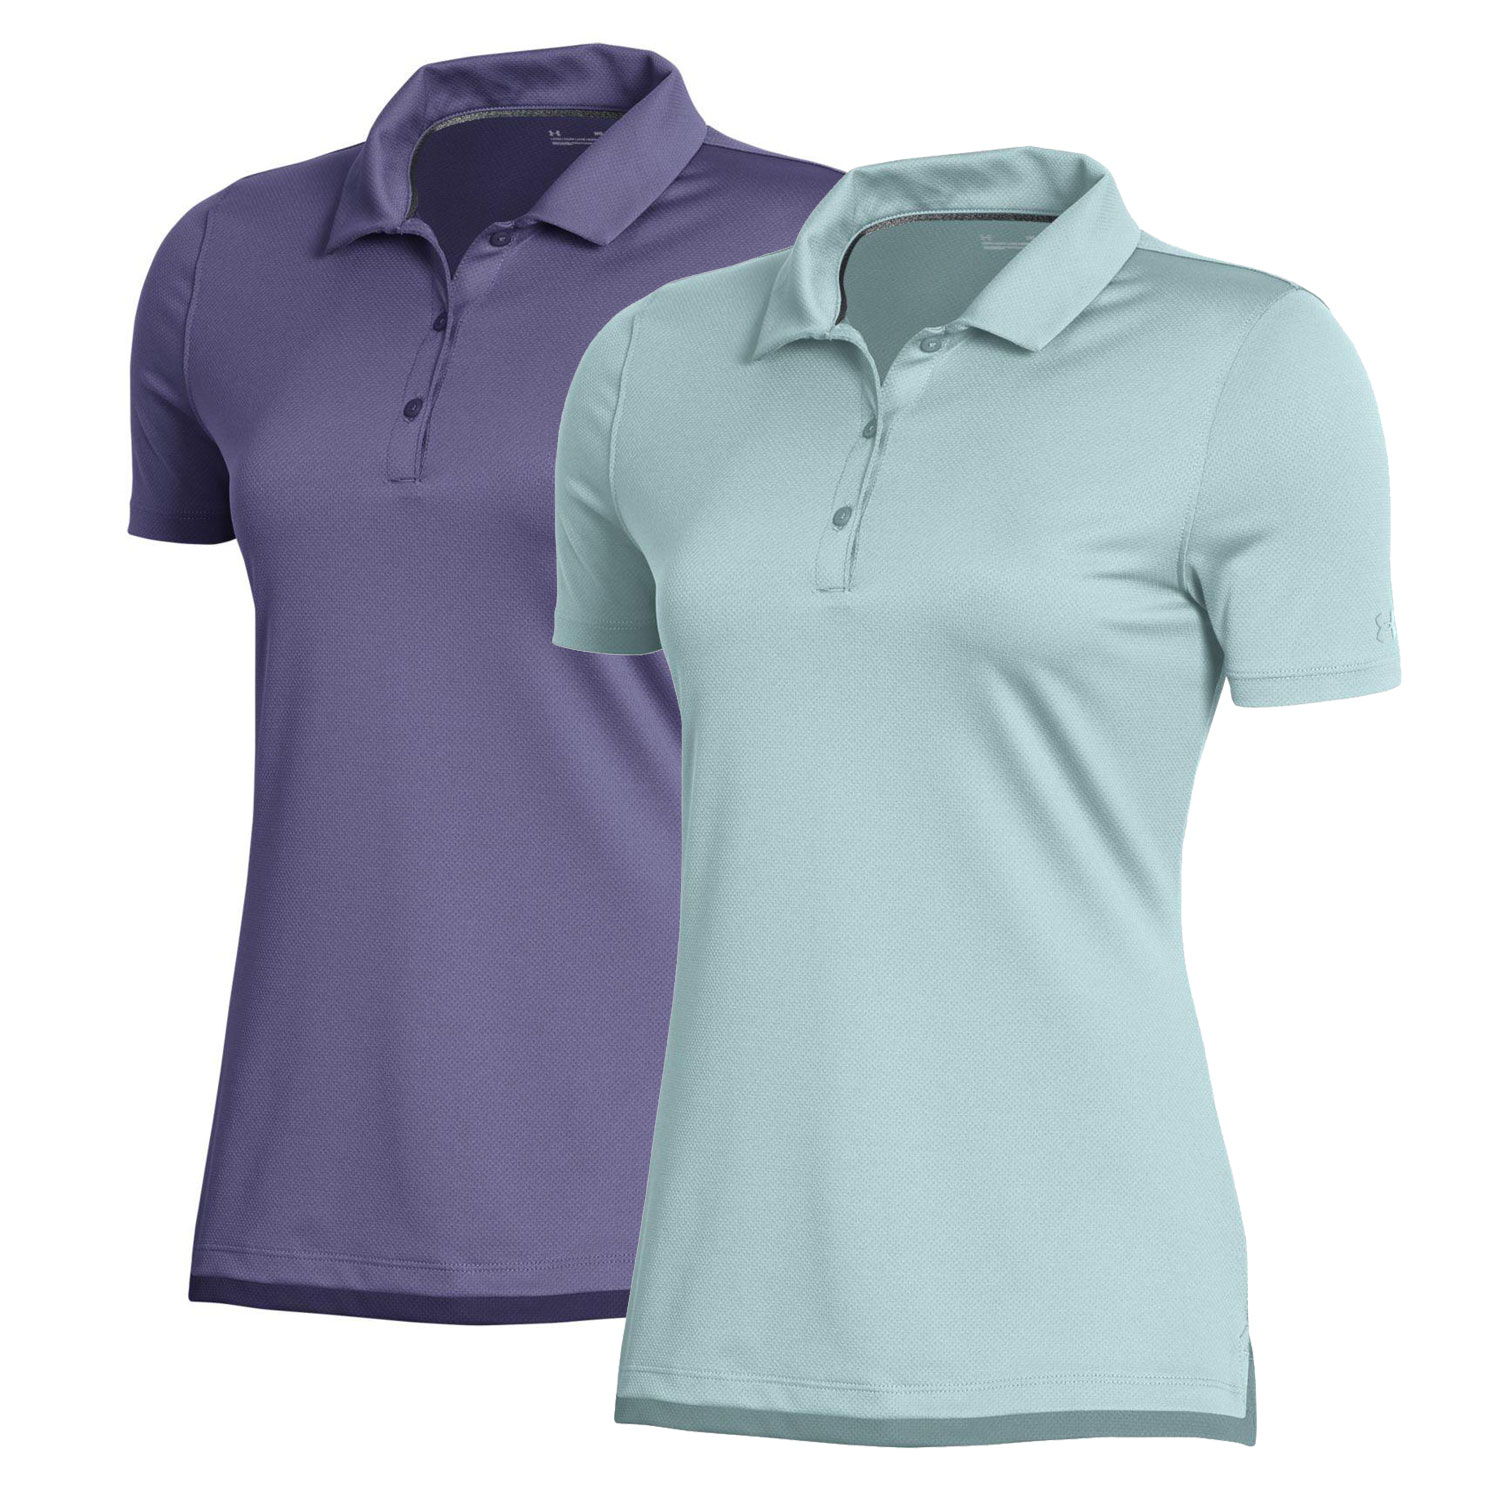 Under Armour Women's 2019 Rally Solid Polo